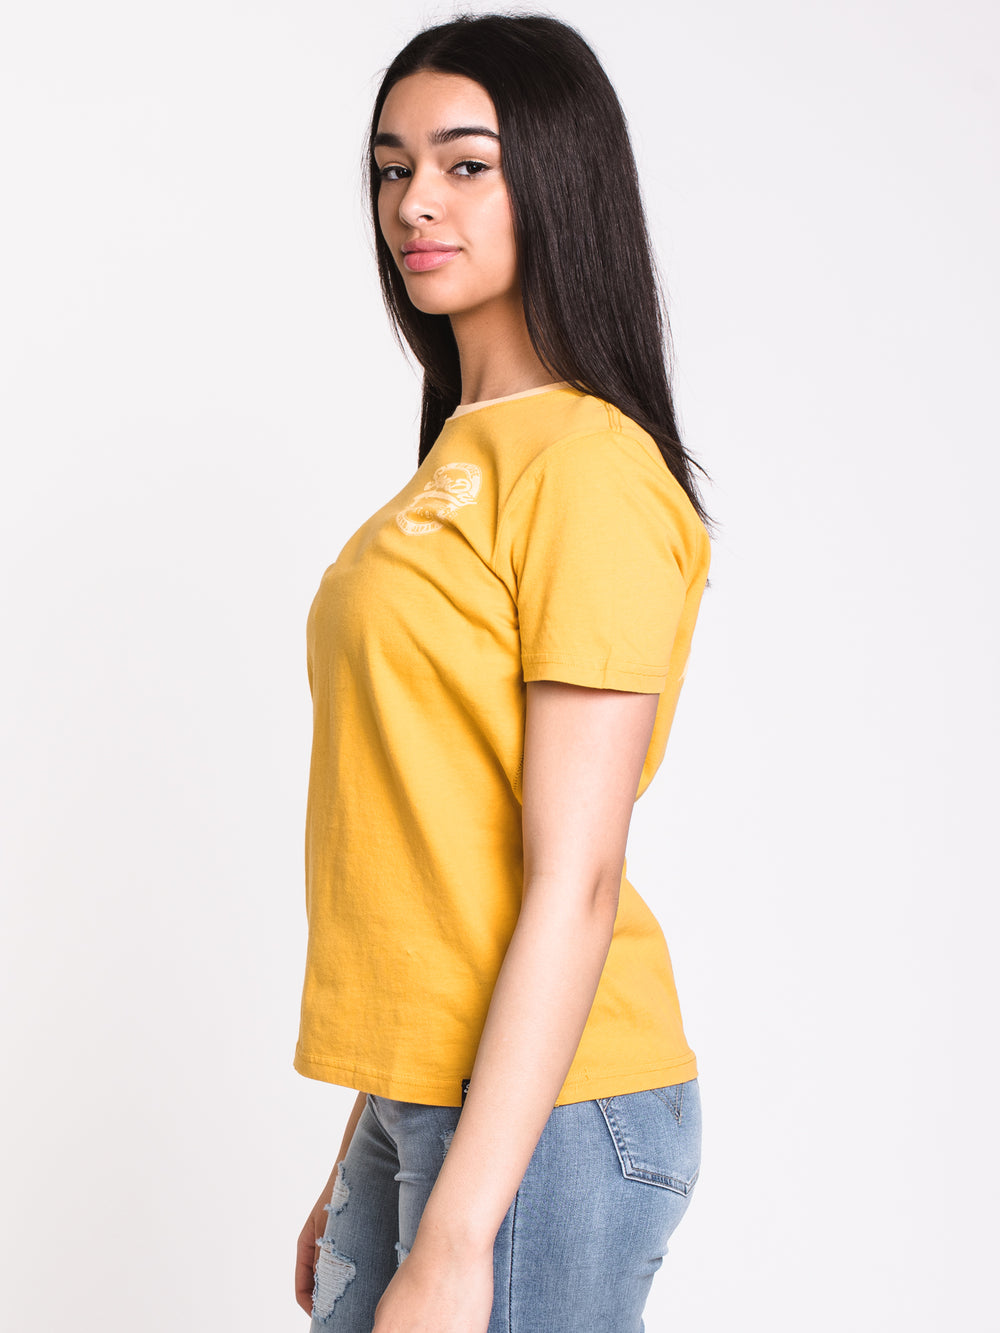 WOMENS VINTAGE LOGO SHORT SLEEVE T-SHIRT - OCHRE - CLEARANCE